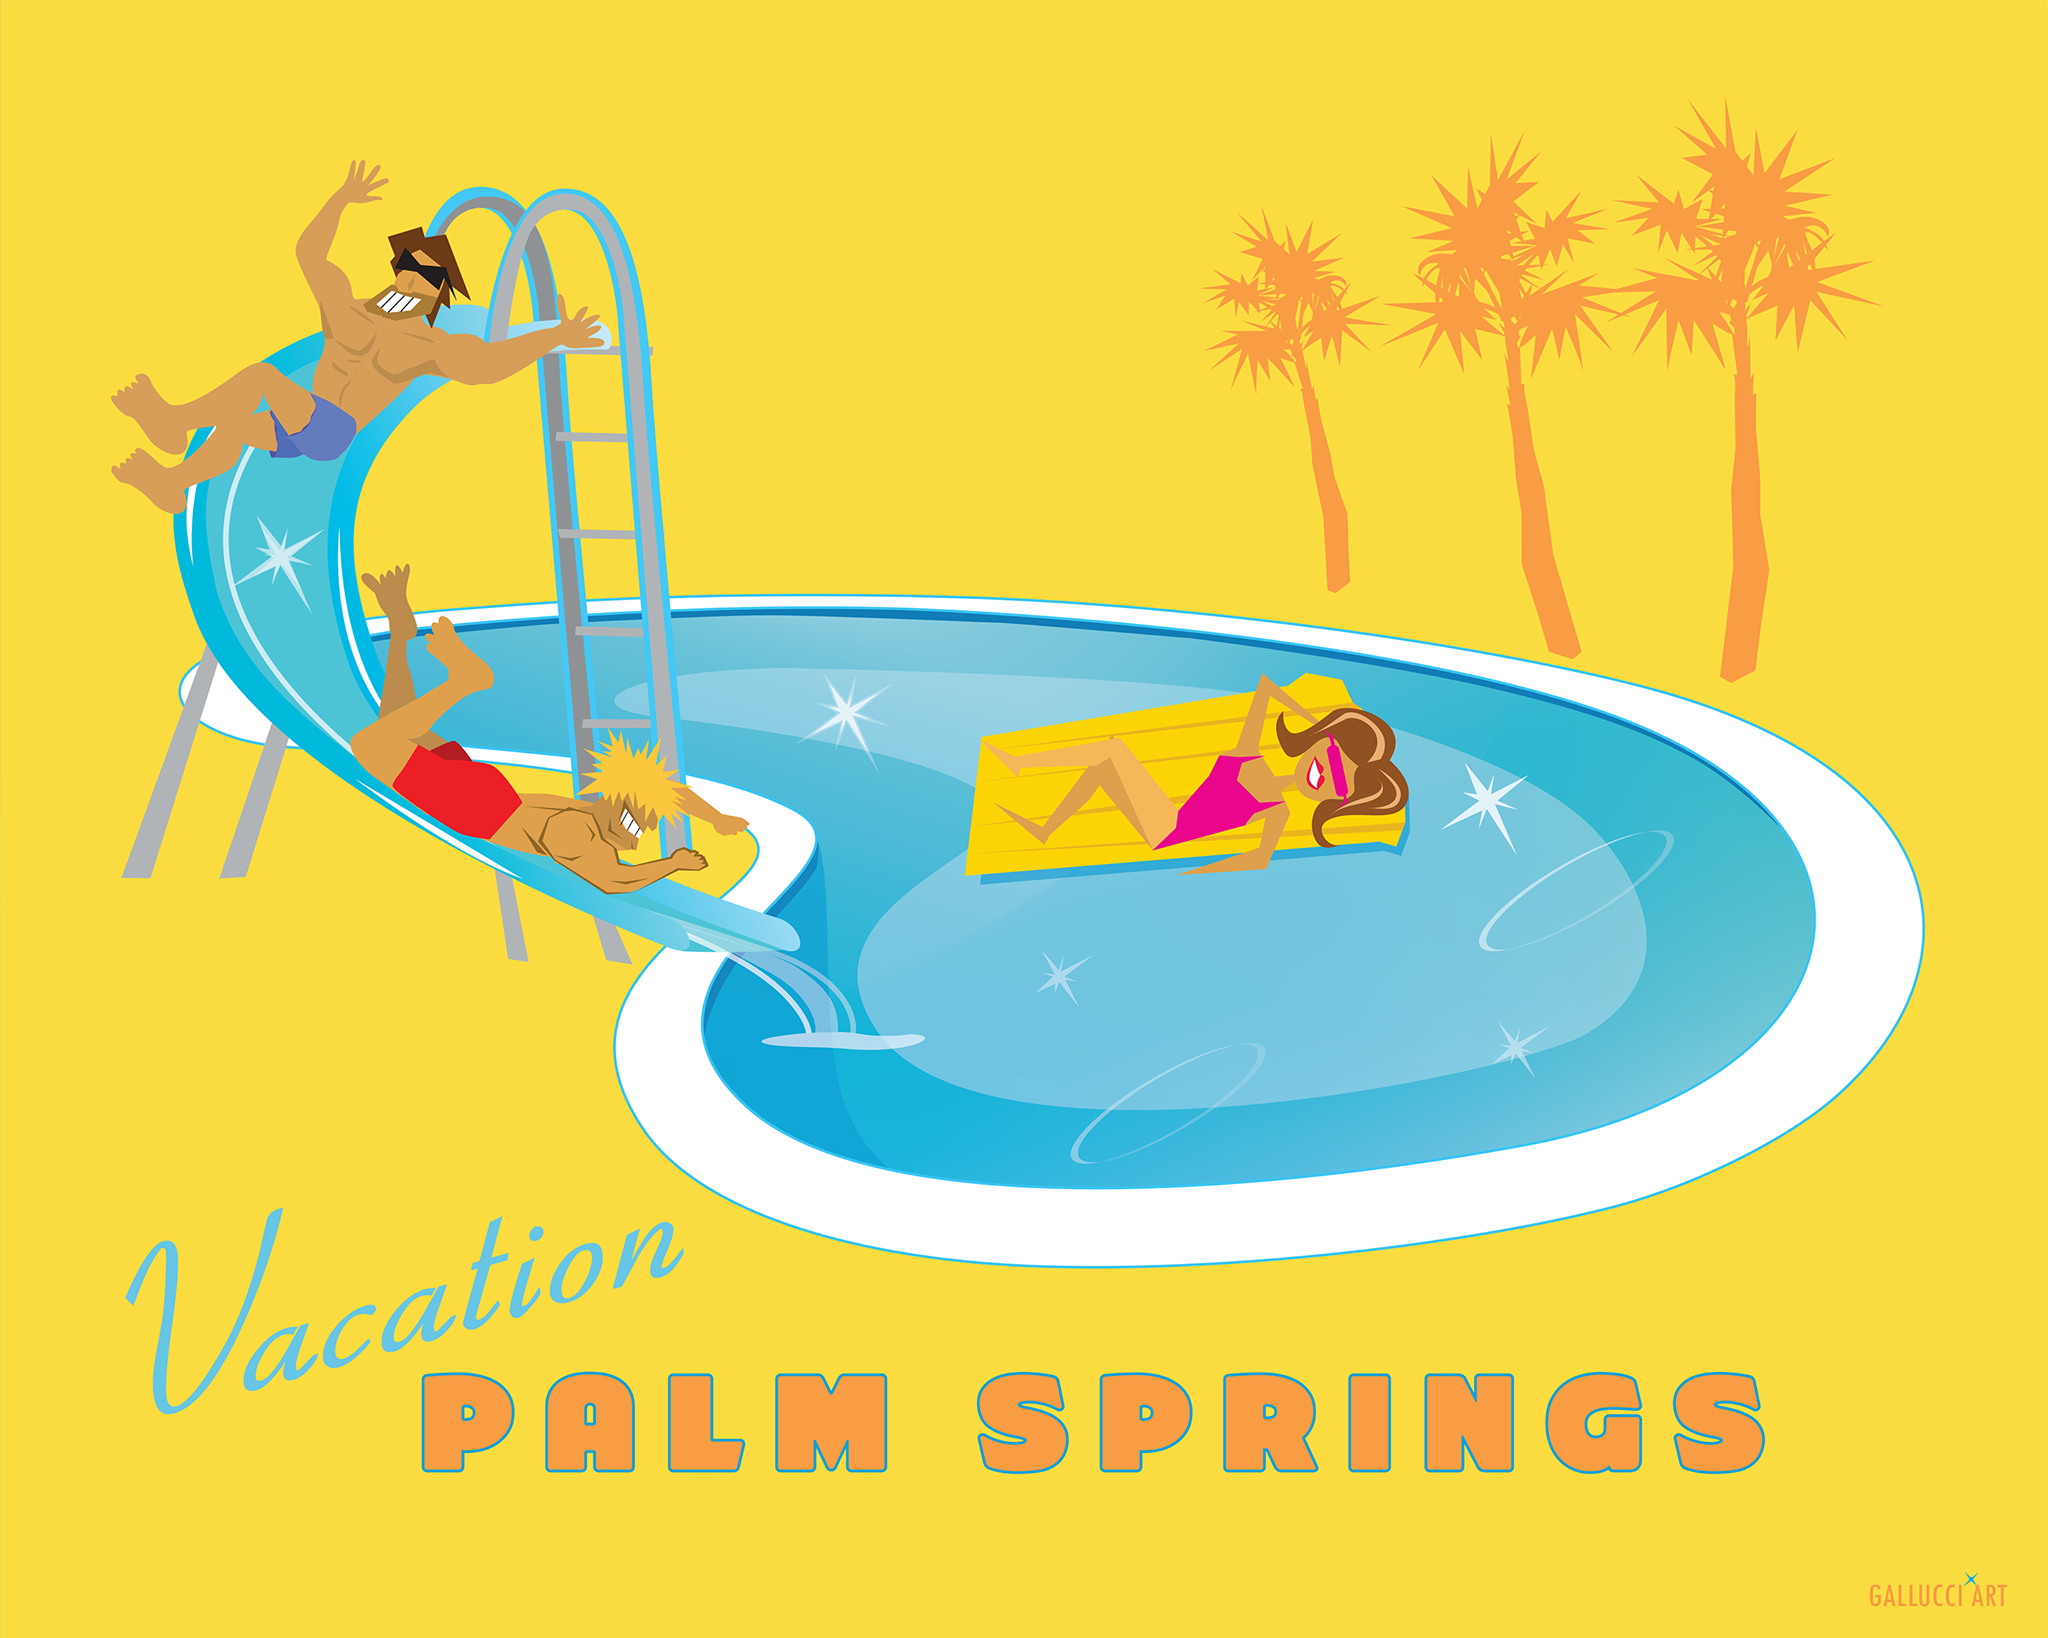 Vacation Palm Springs Matte 11x14